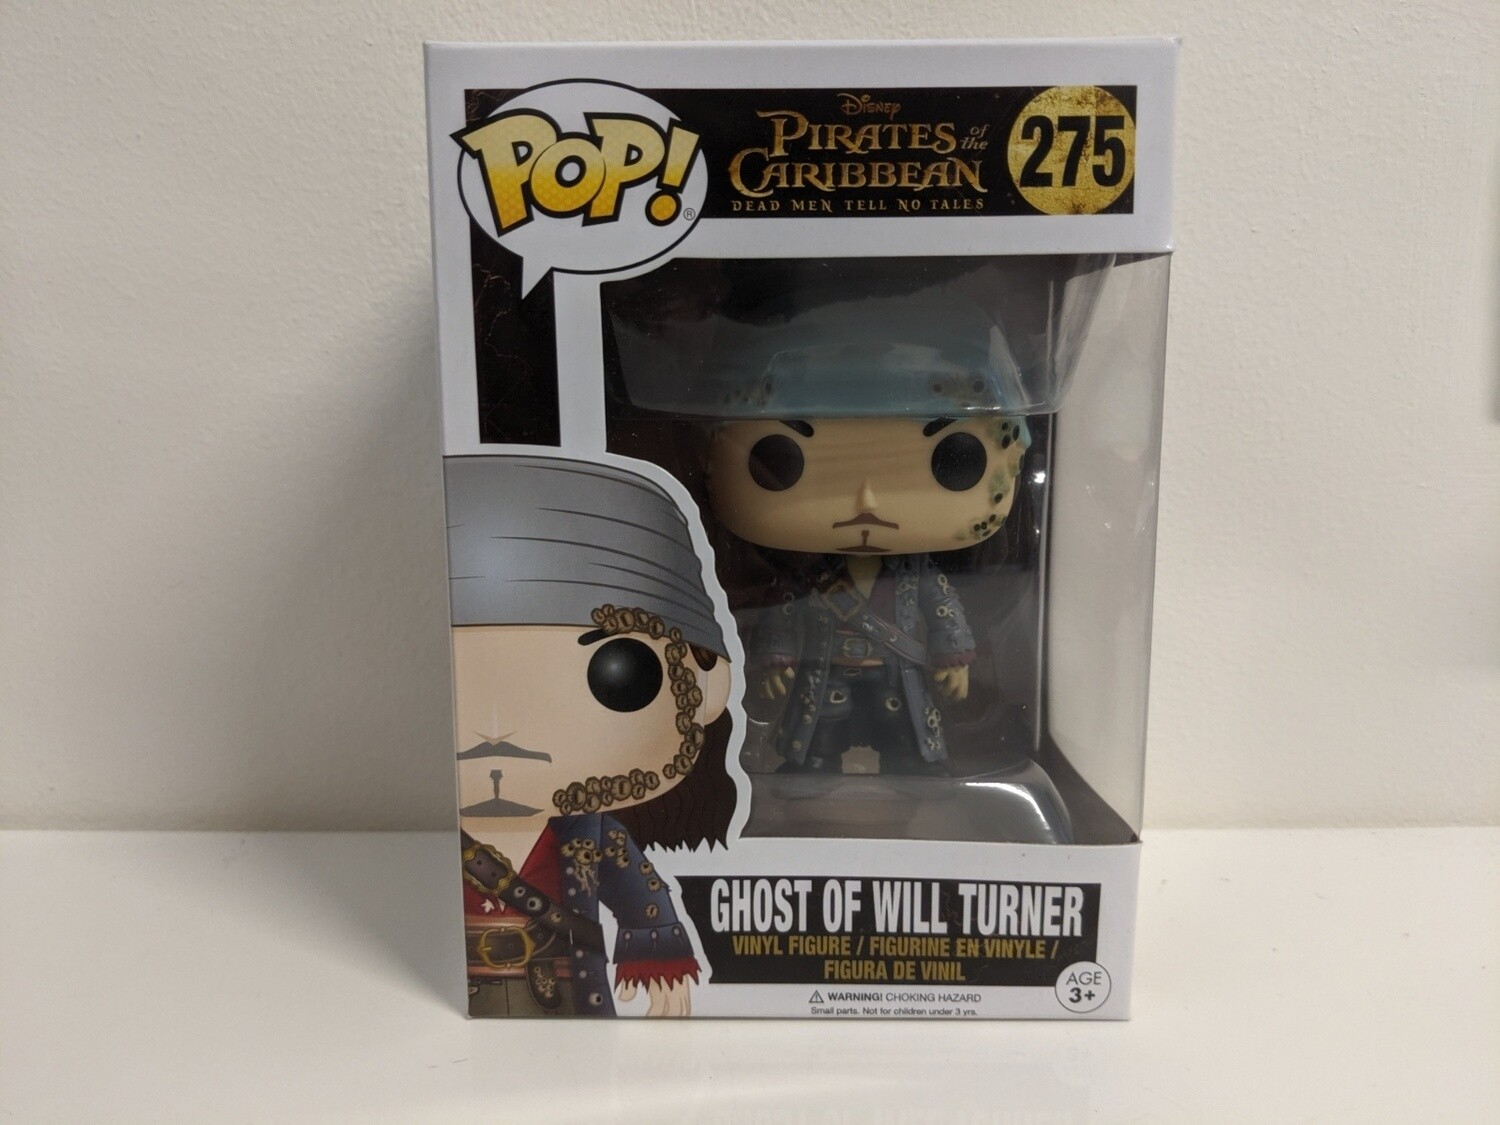 Pirates of the Caribbean- Ghost of Will Turner Pop! Vinyl (NFR)